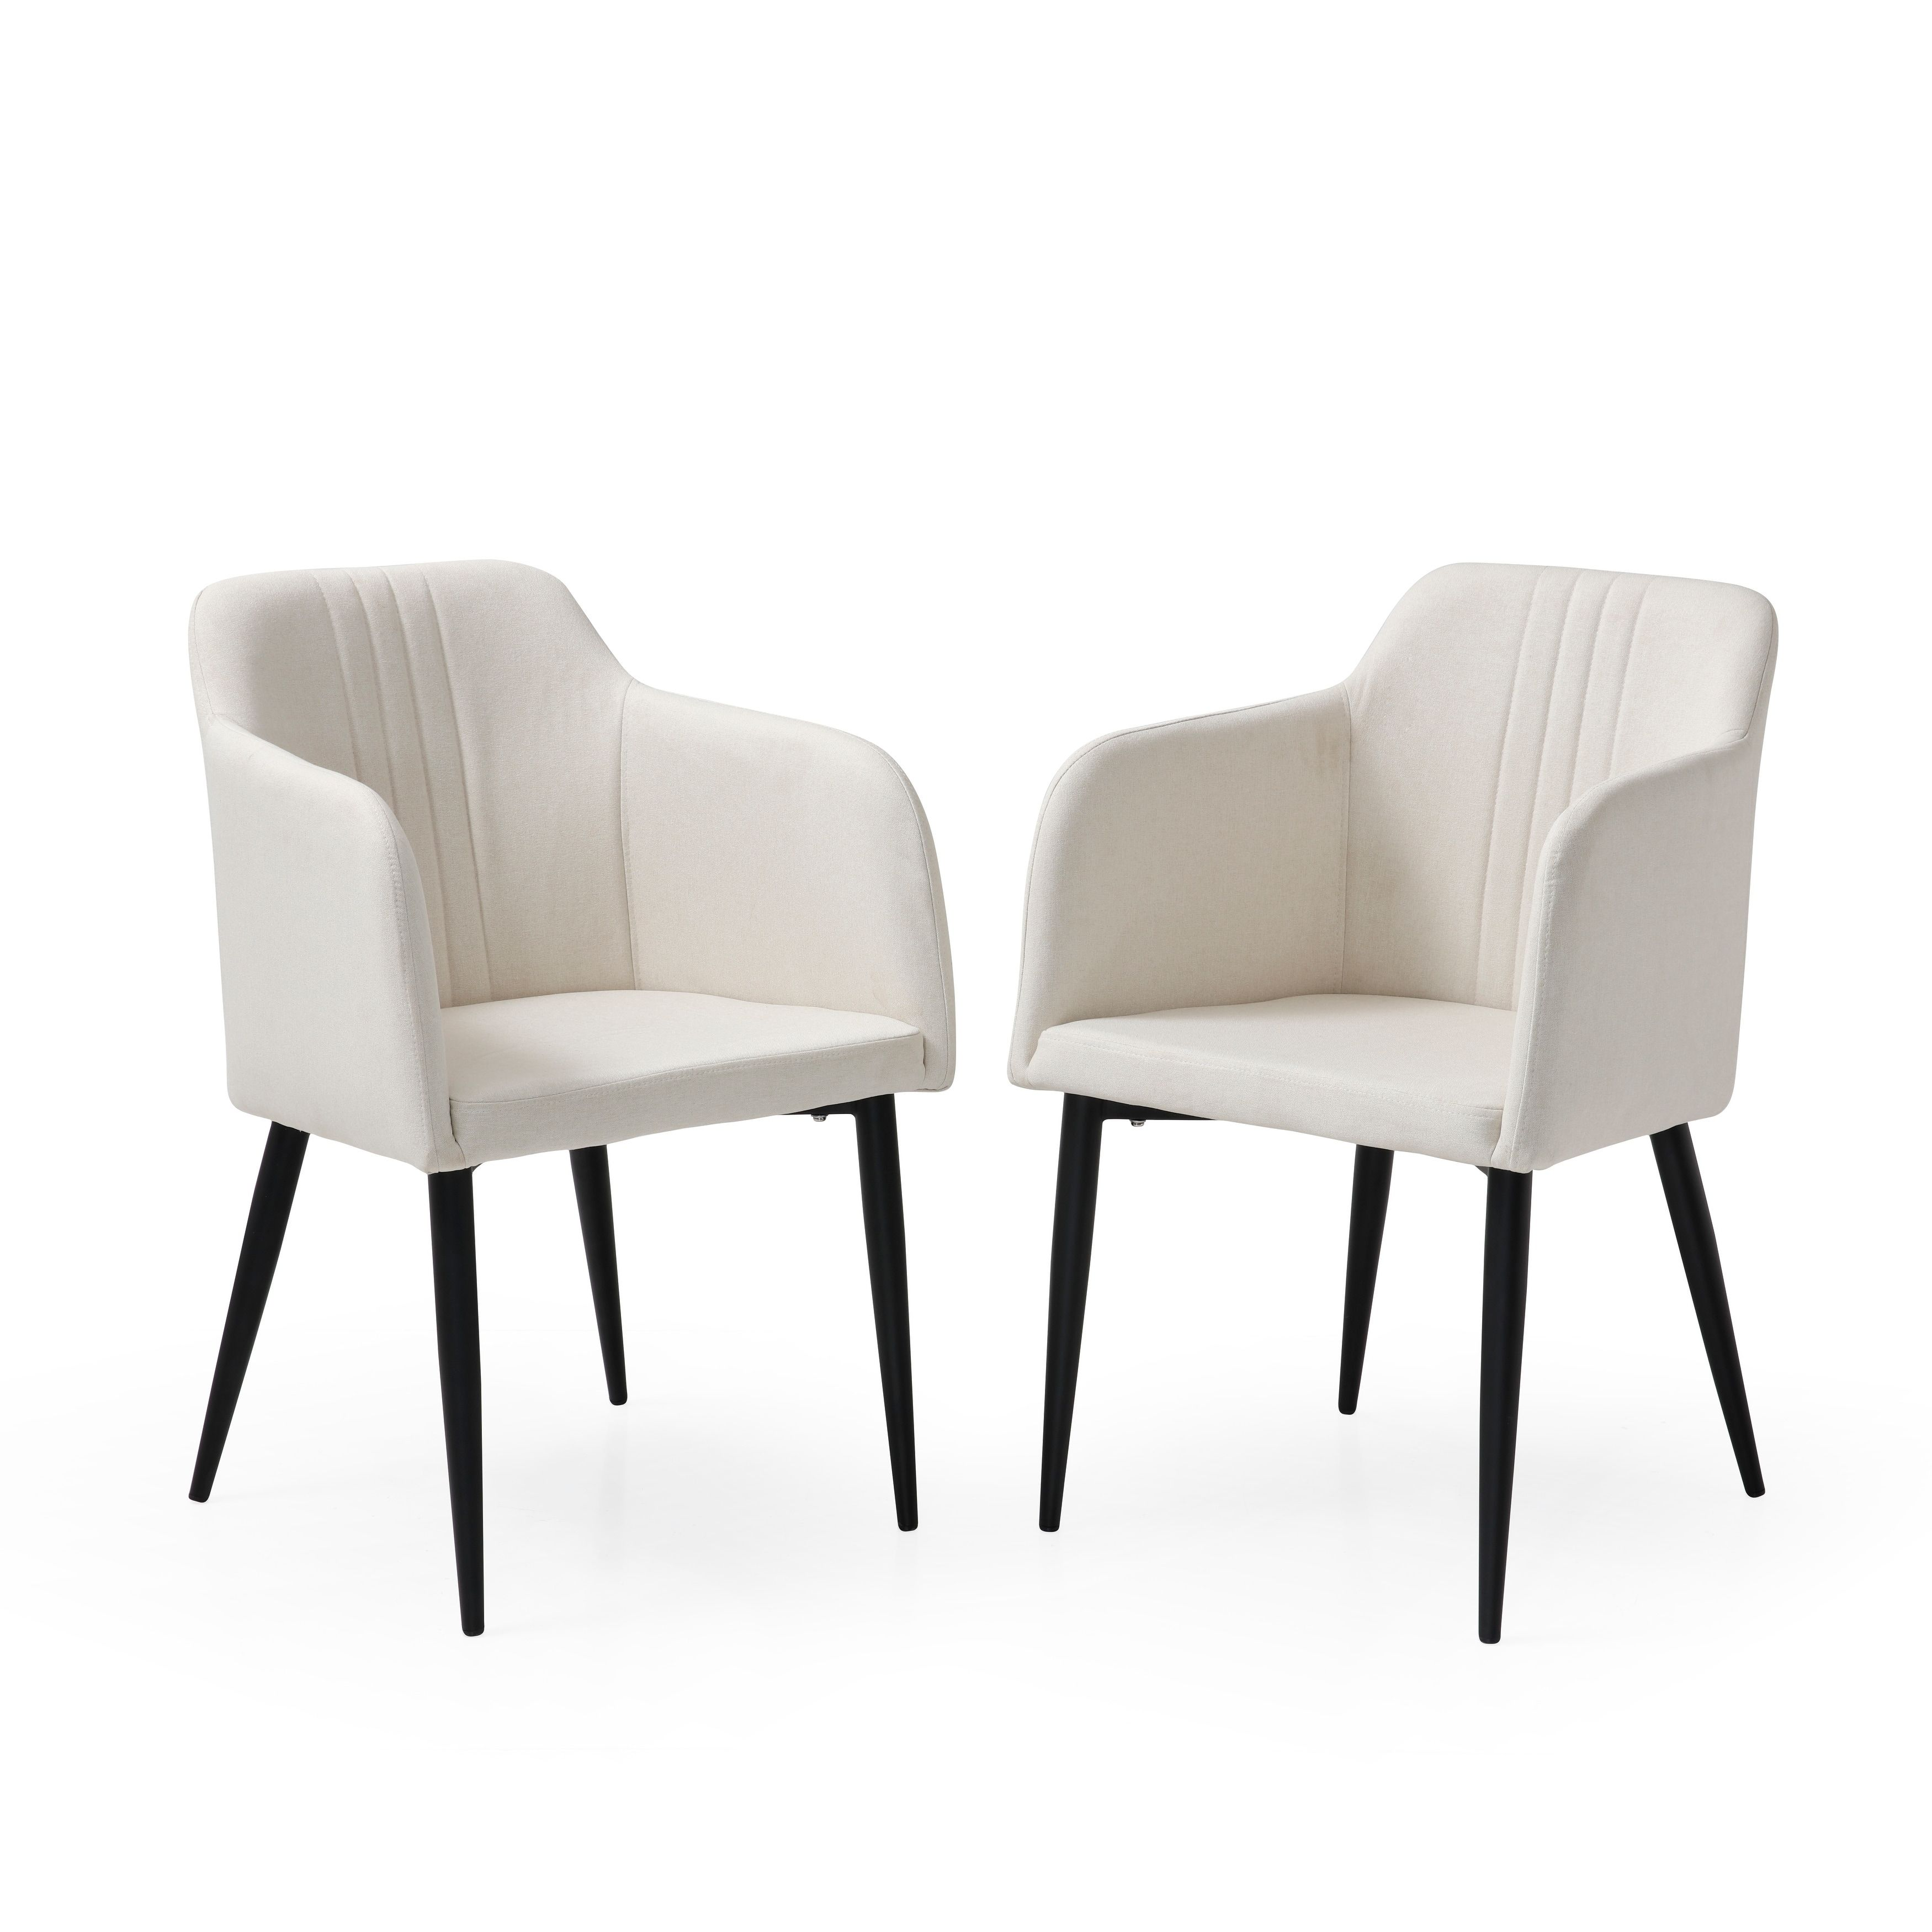 Swell Mid Century Jason Dining Room Accent Chair Set Of 2 Table Gmtry Best Dining Table And Chair Ideas Images Gmtryco